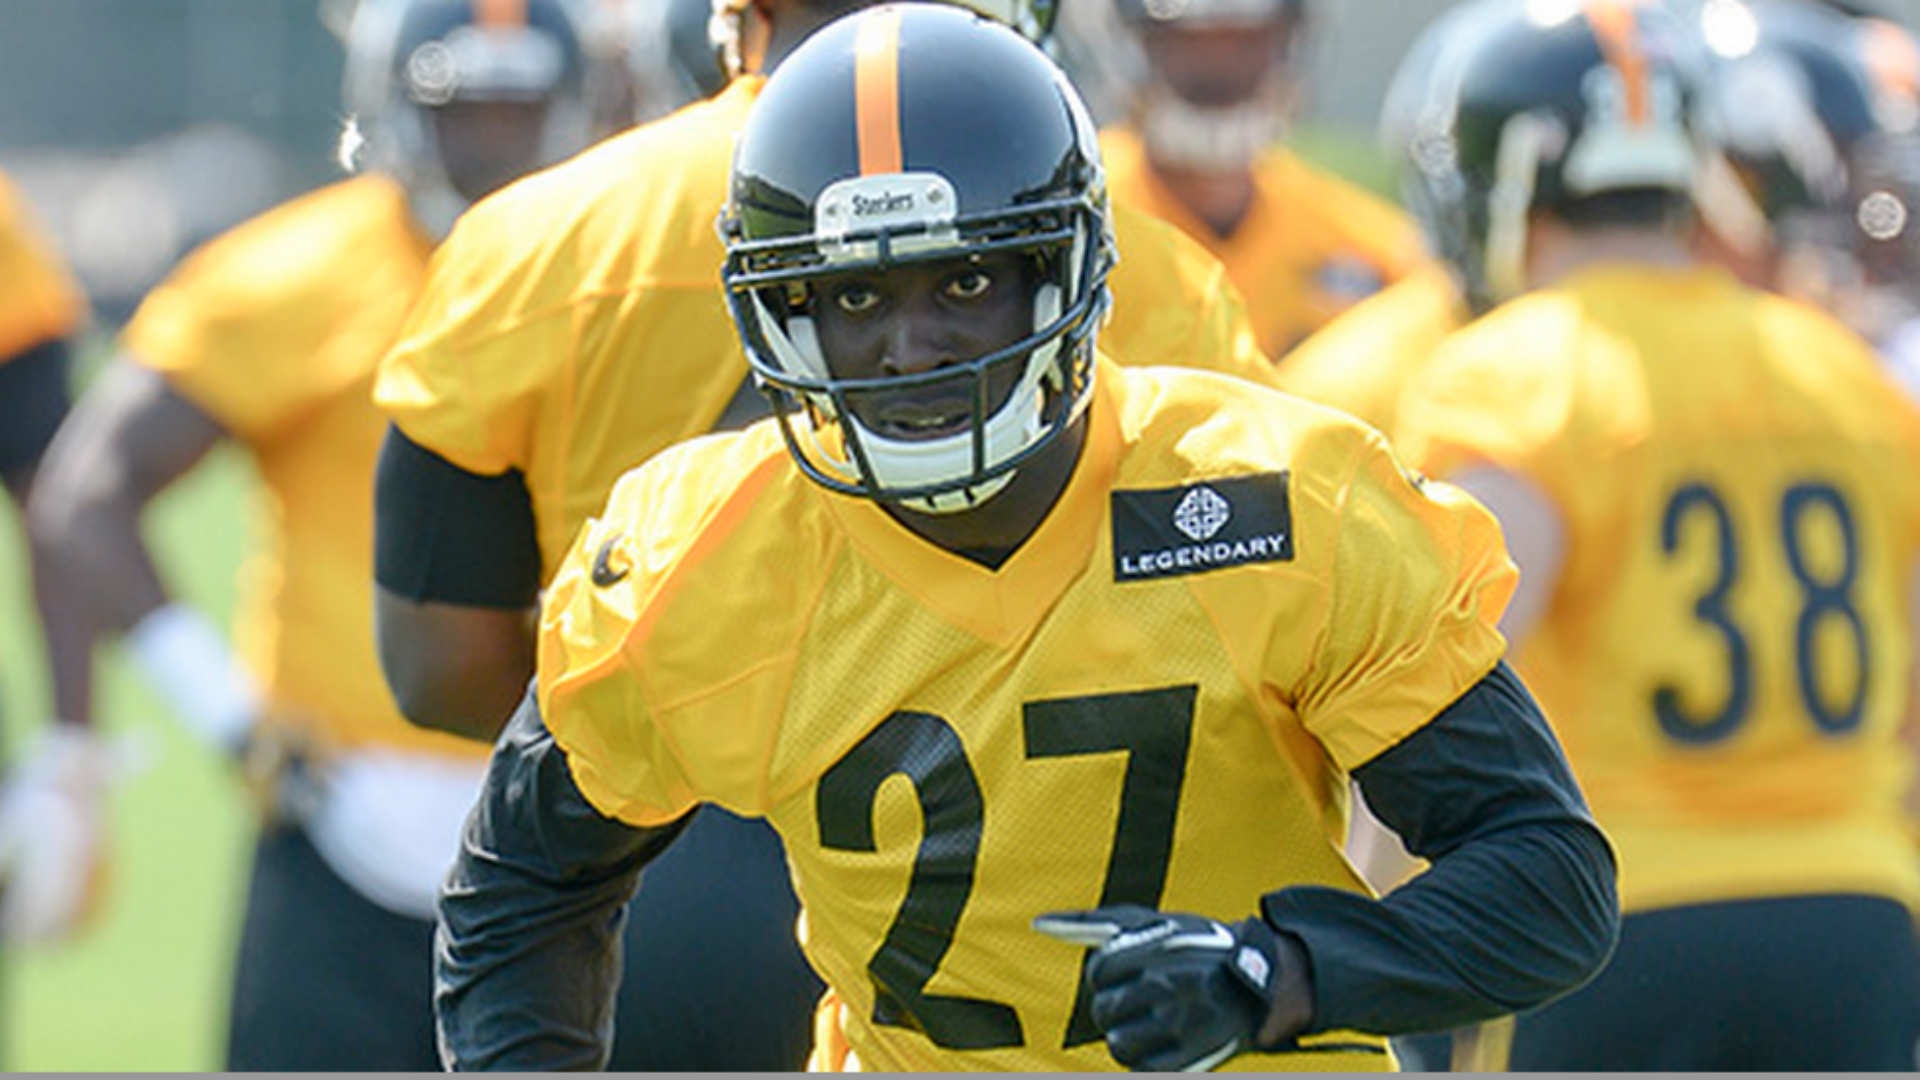 Steelers rookie Senquez Golson may undergo season-ending surgery